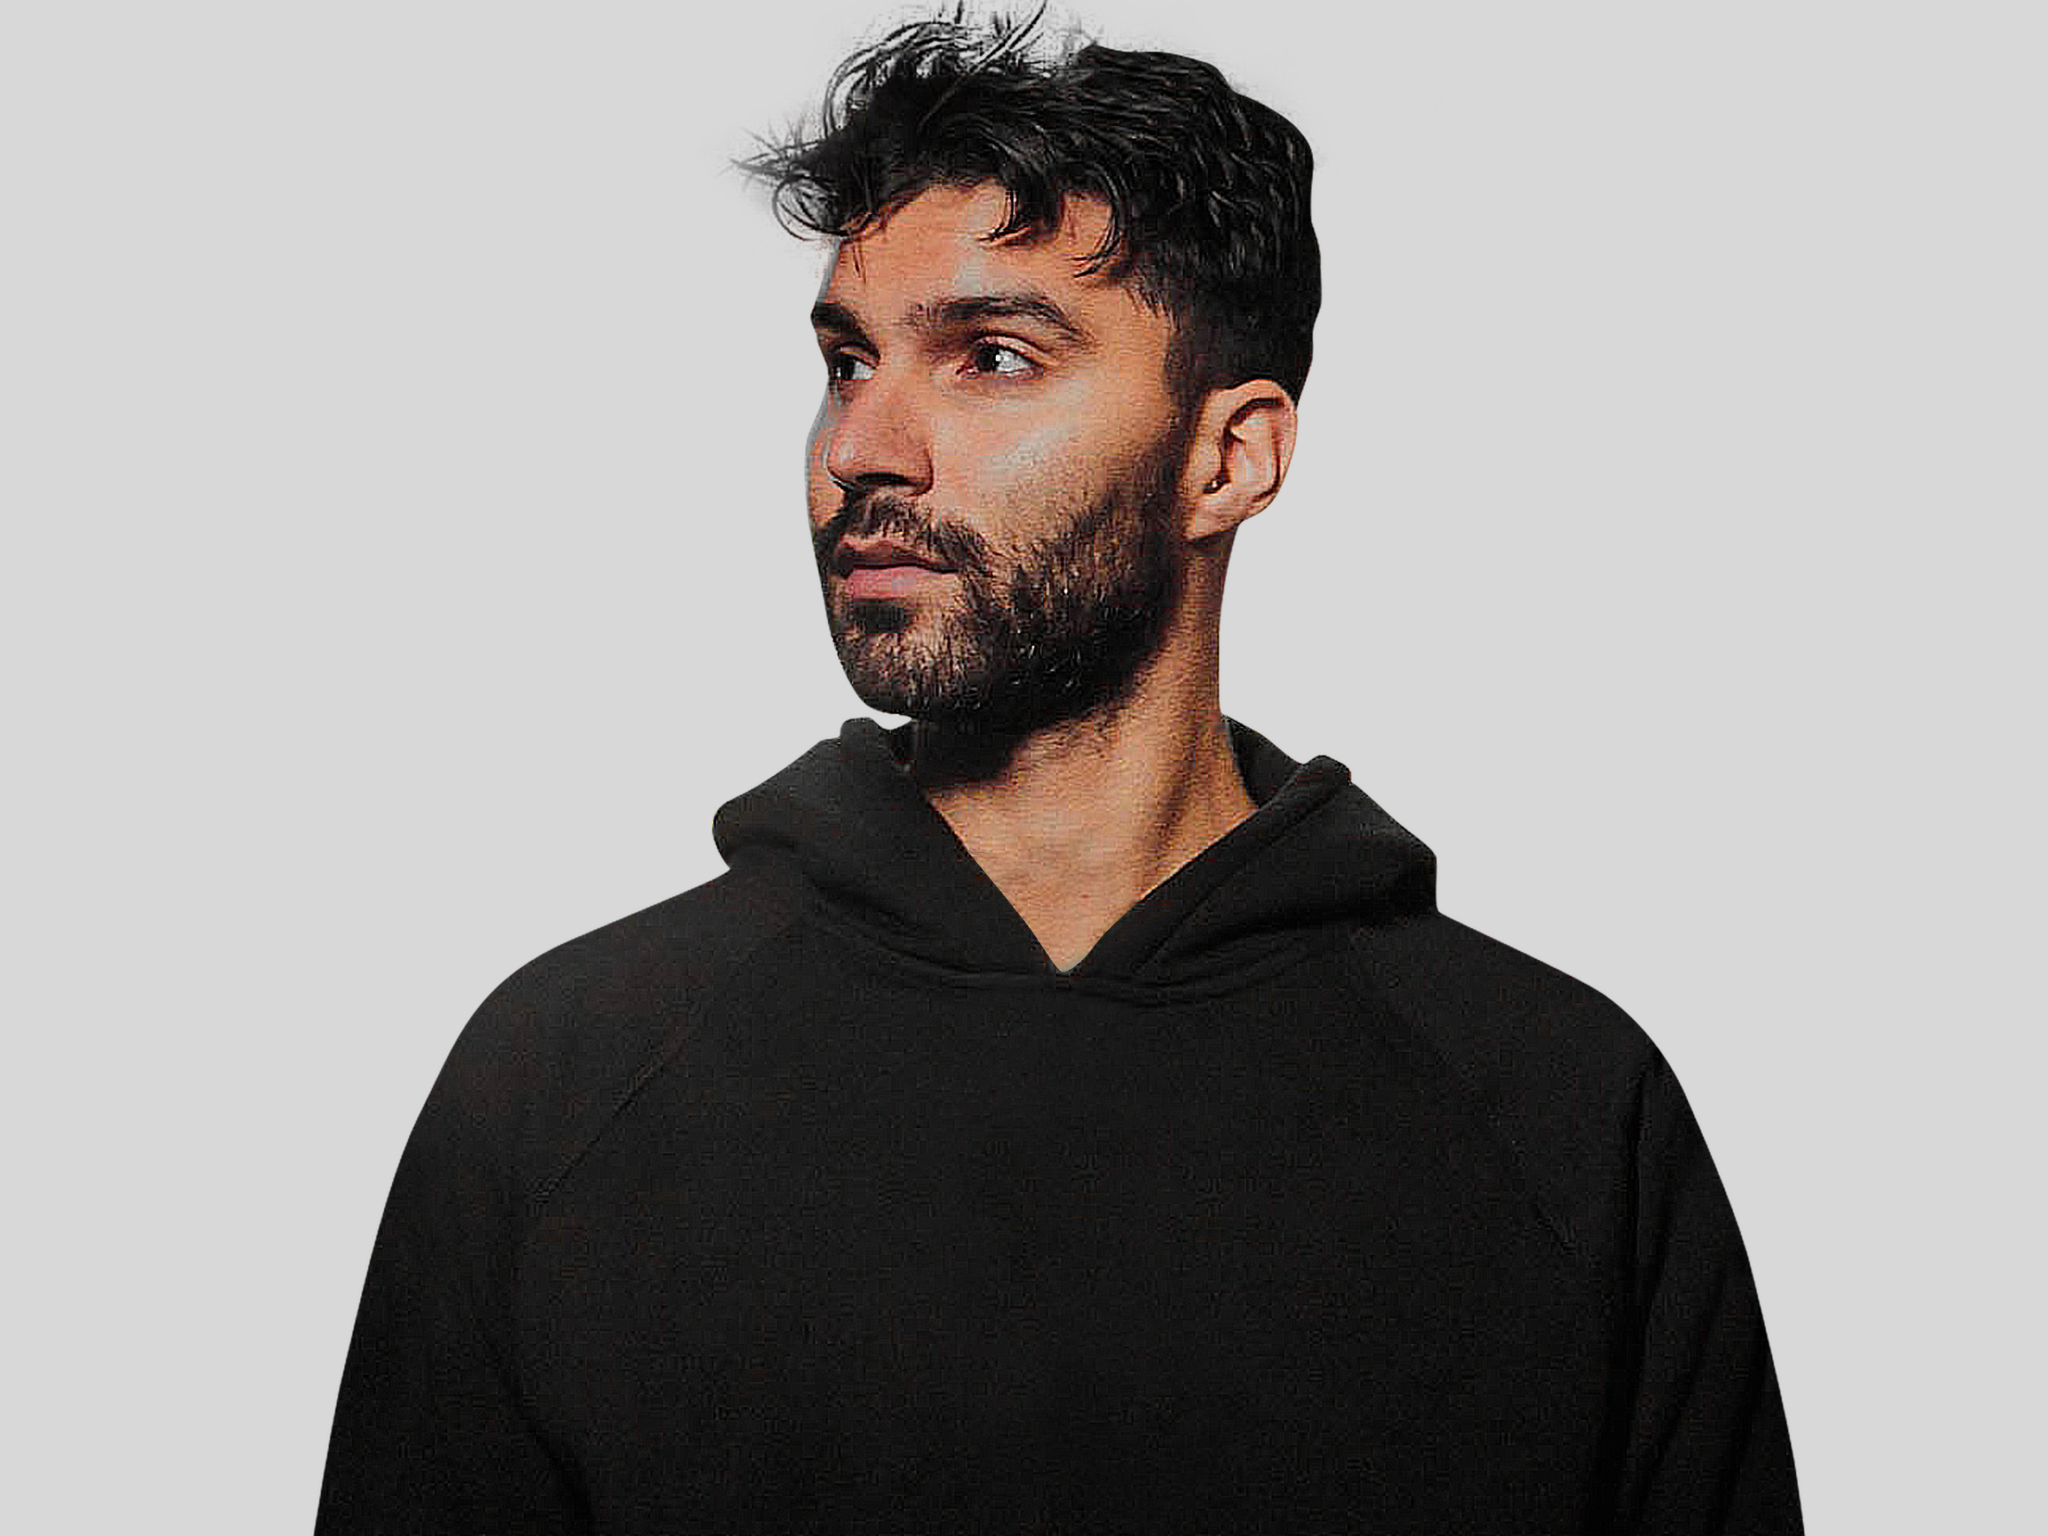 """R3HAB taps Polish talent Fafaq and DNF for Tech-House Influenced Single """"Ringtone,"""" Launches MDLBEAST Records"""